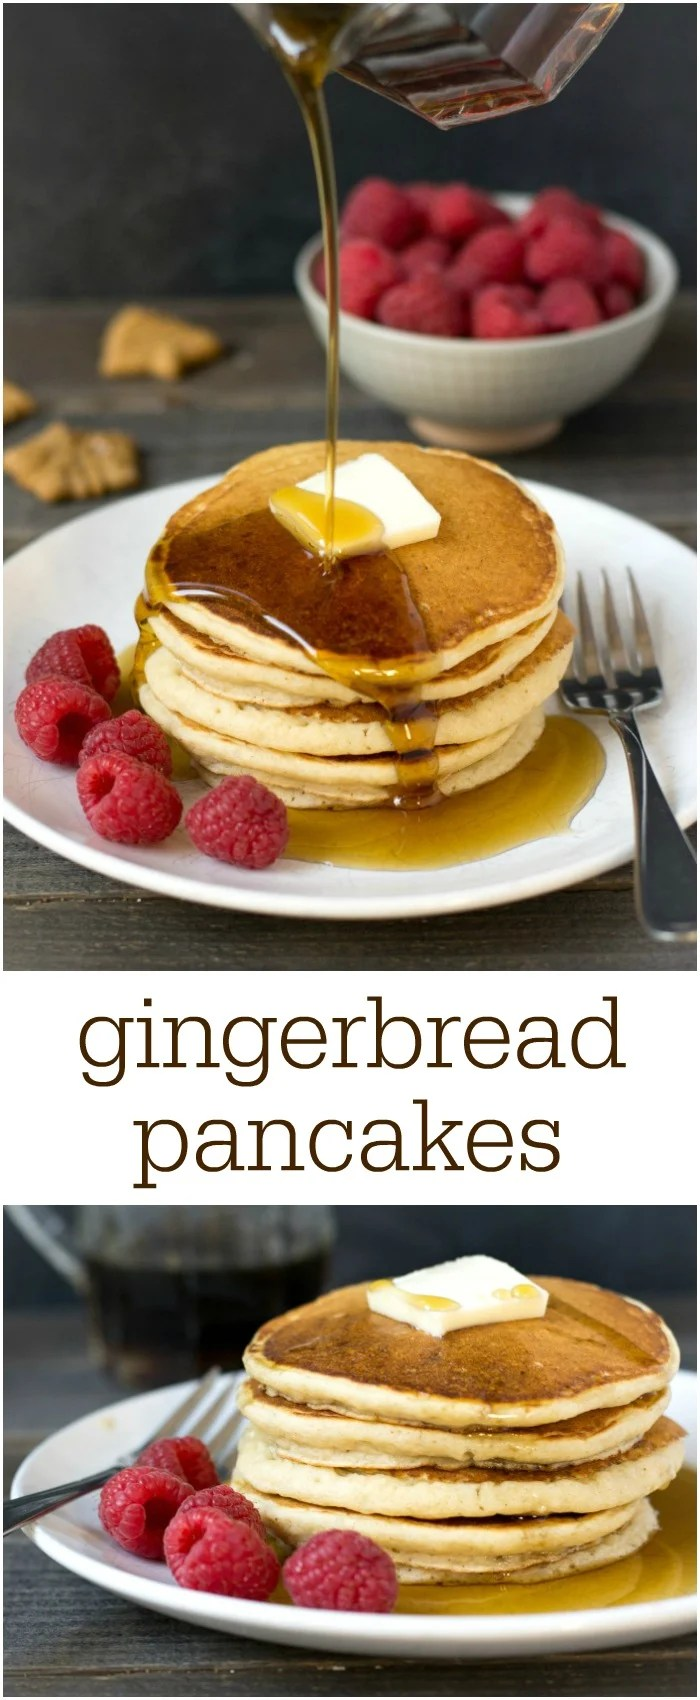 These gluten free gingerbread pancakes are so delicious for a holiday breakfast! This healthy recipe will get everyone in the holiday spirit. Recipe from realfoodrealdeals.com